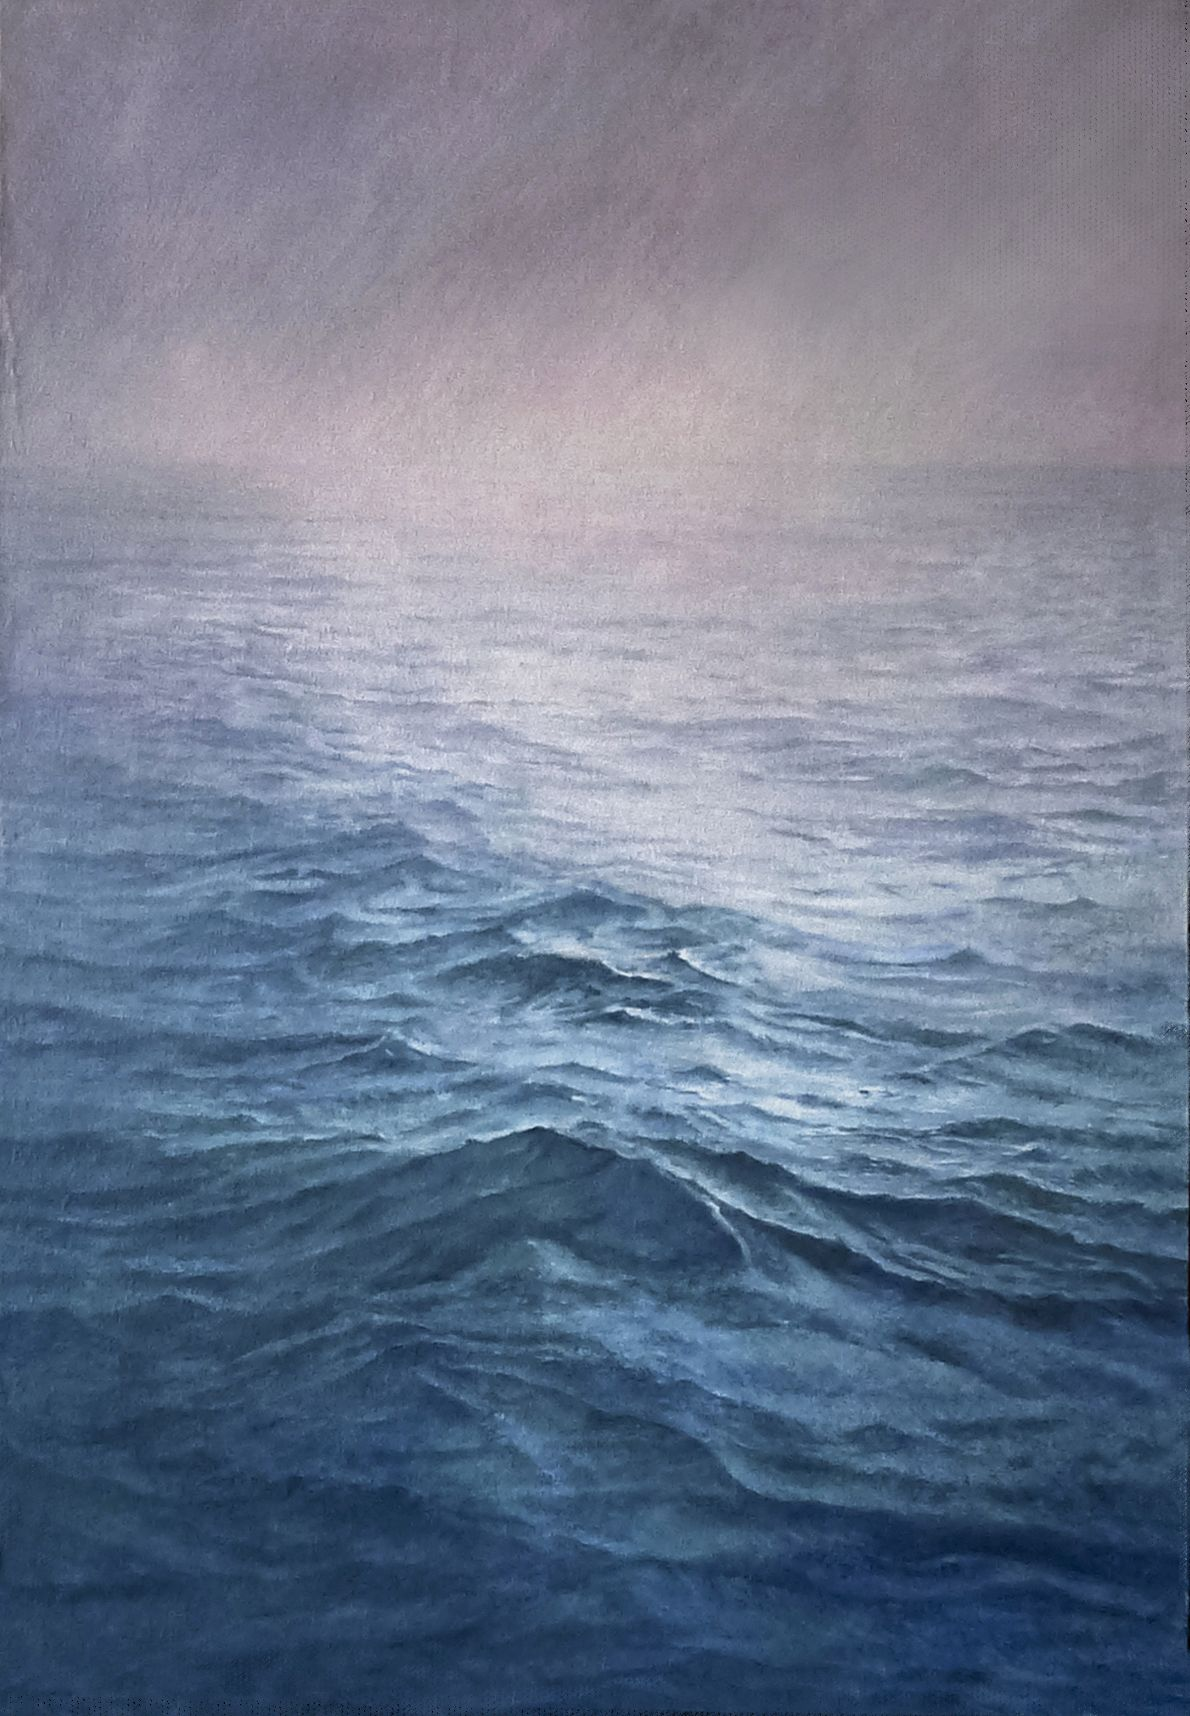 Sea at sunset. 110x90cm. Oil on canvas glued to panel.